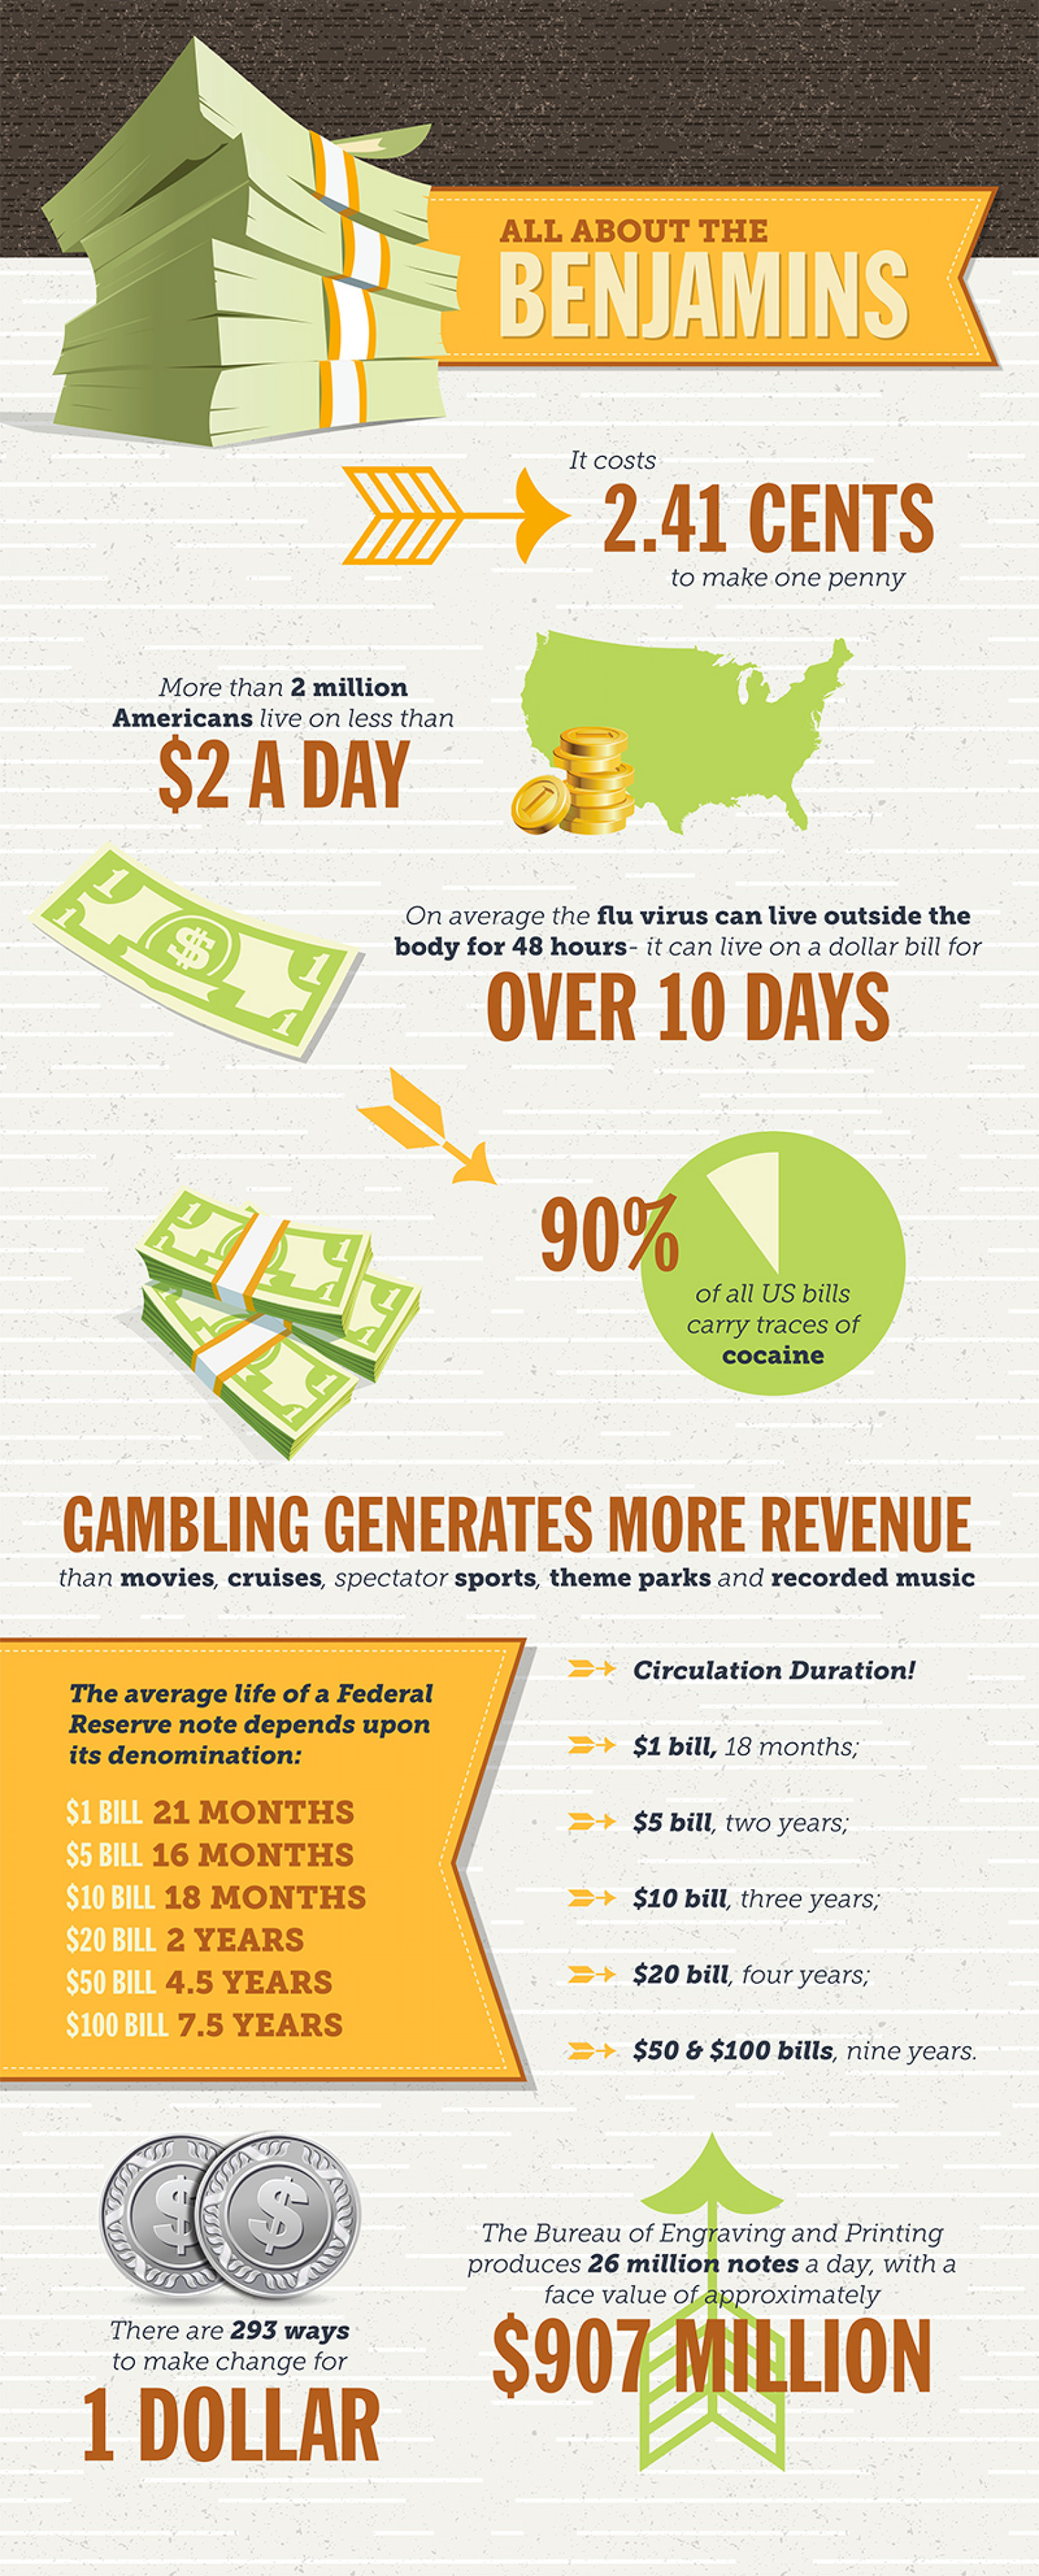 All About The Benjamins Infographic